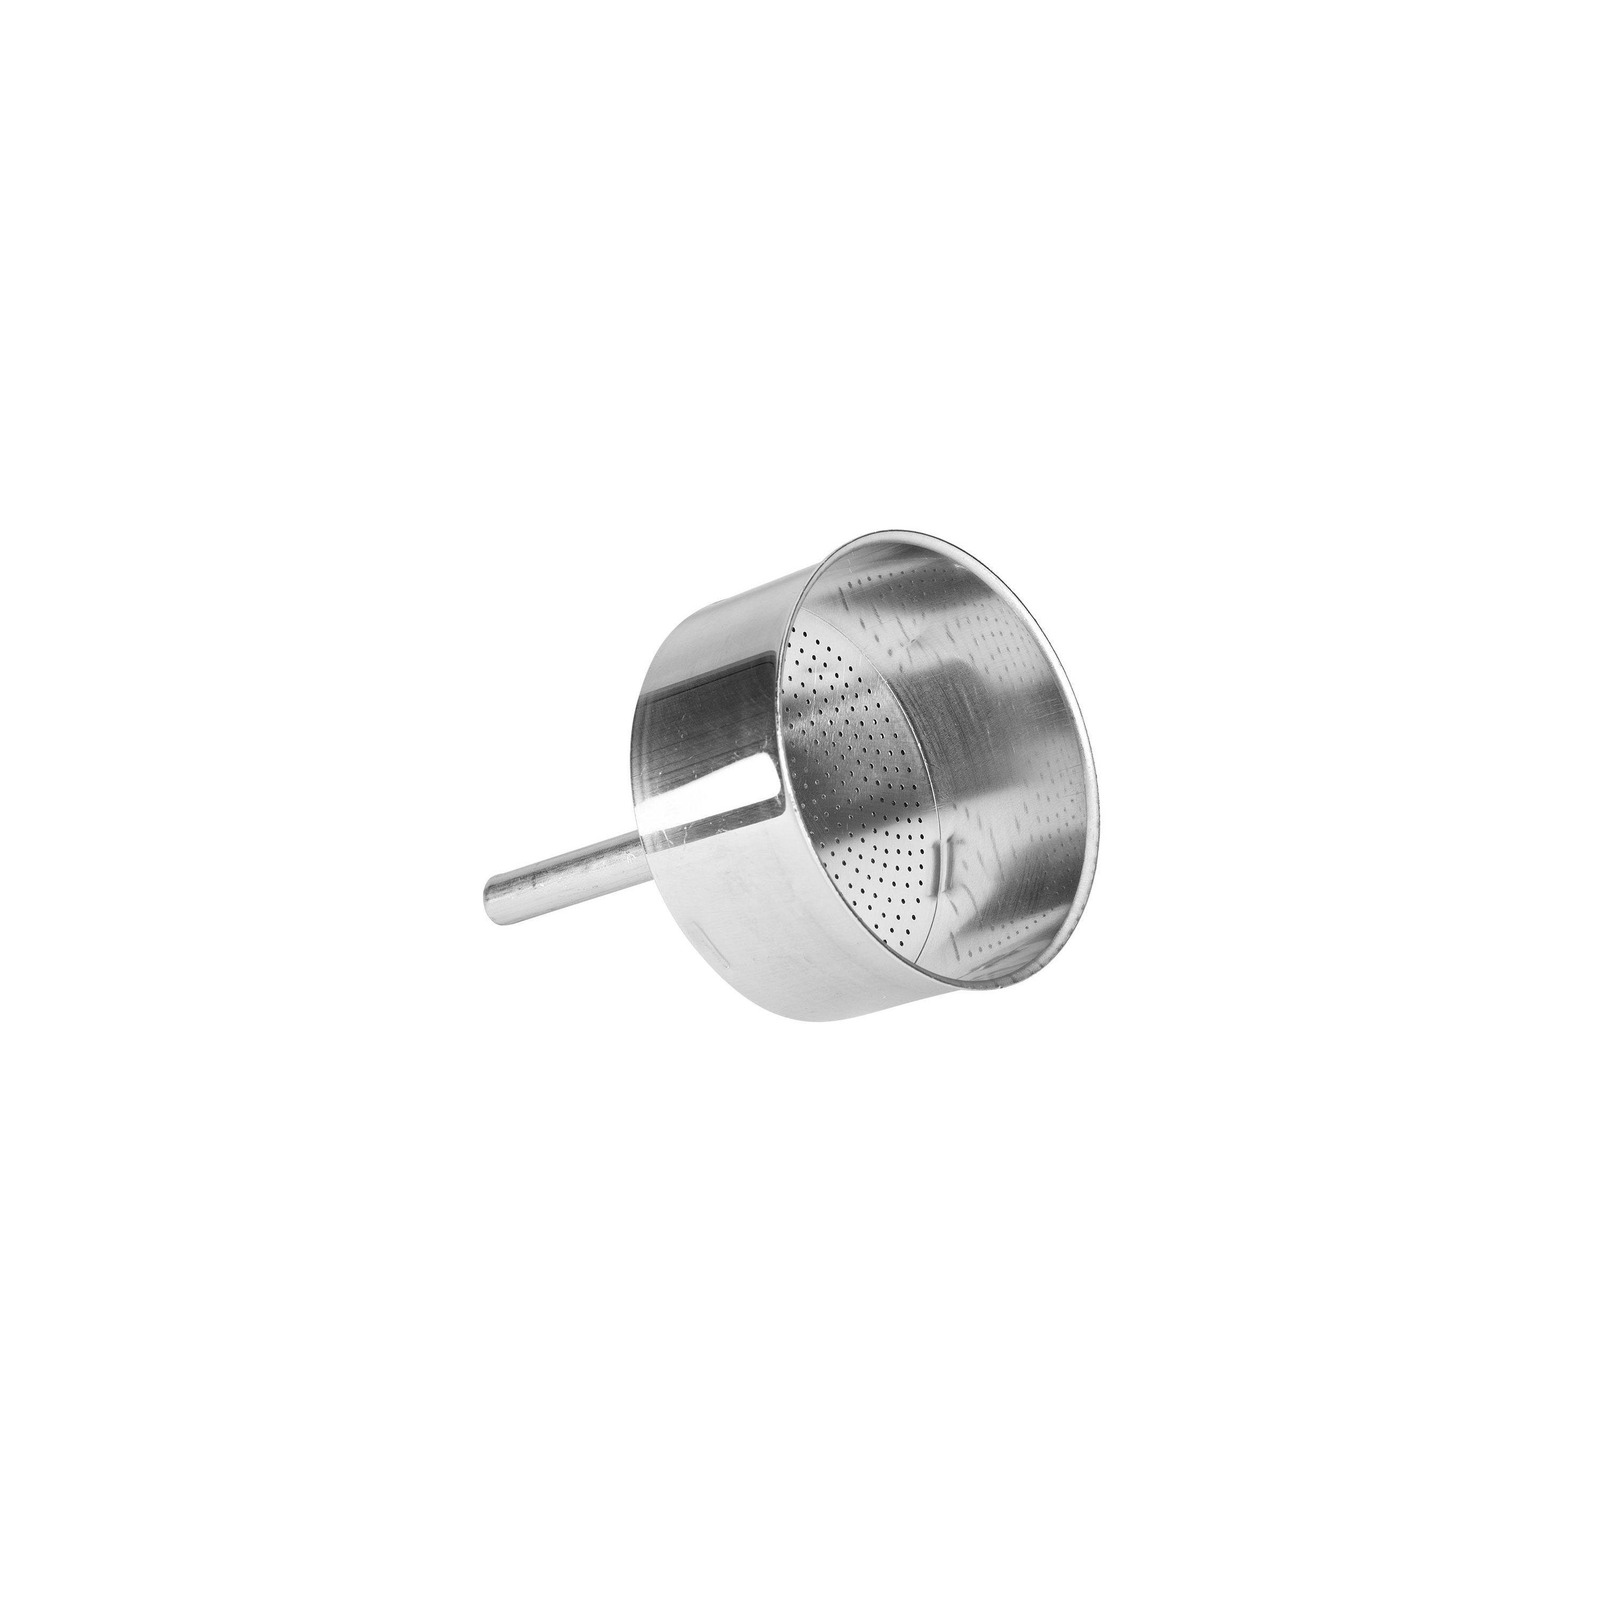 Bialetti Replacement Funnel - 2 Cups